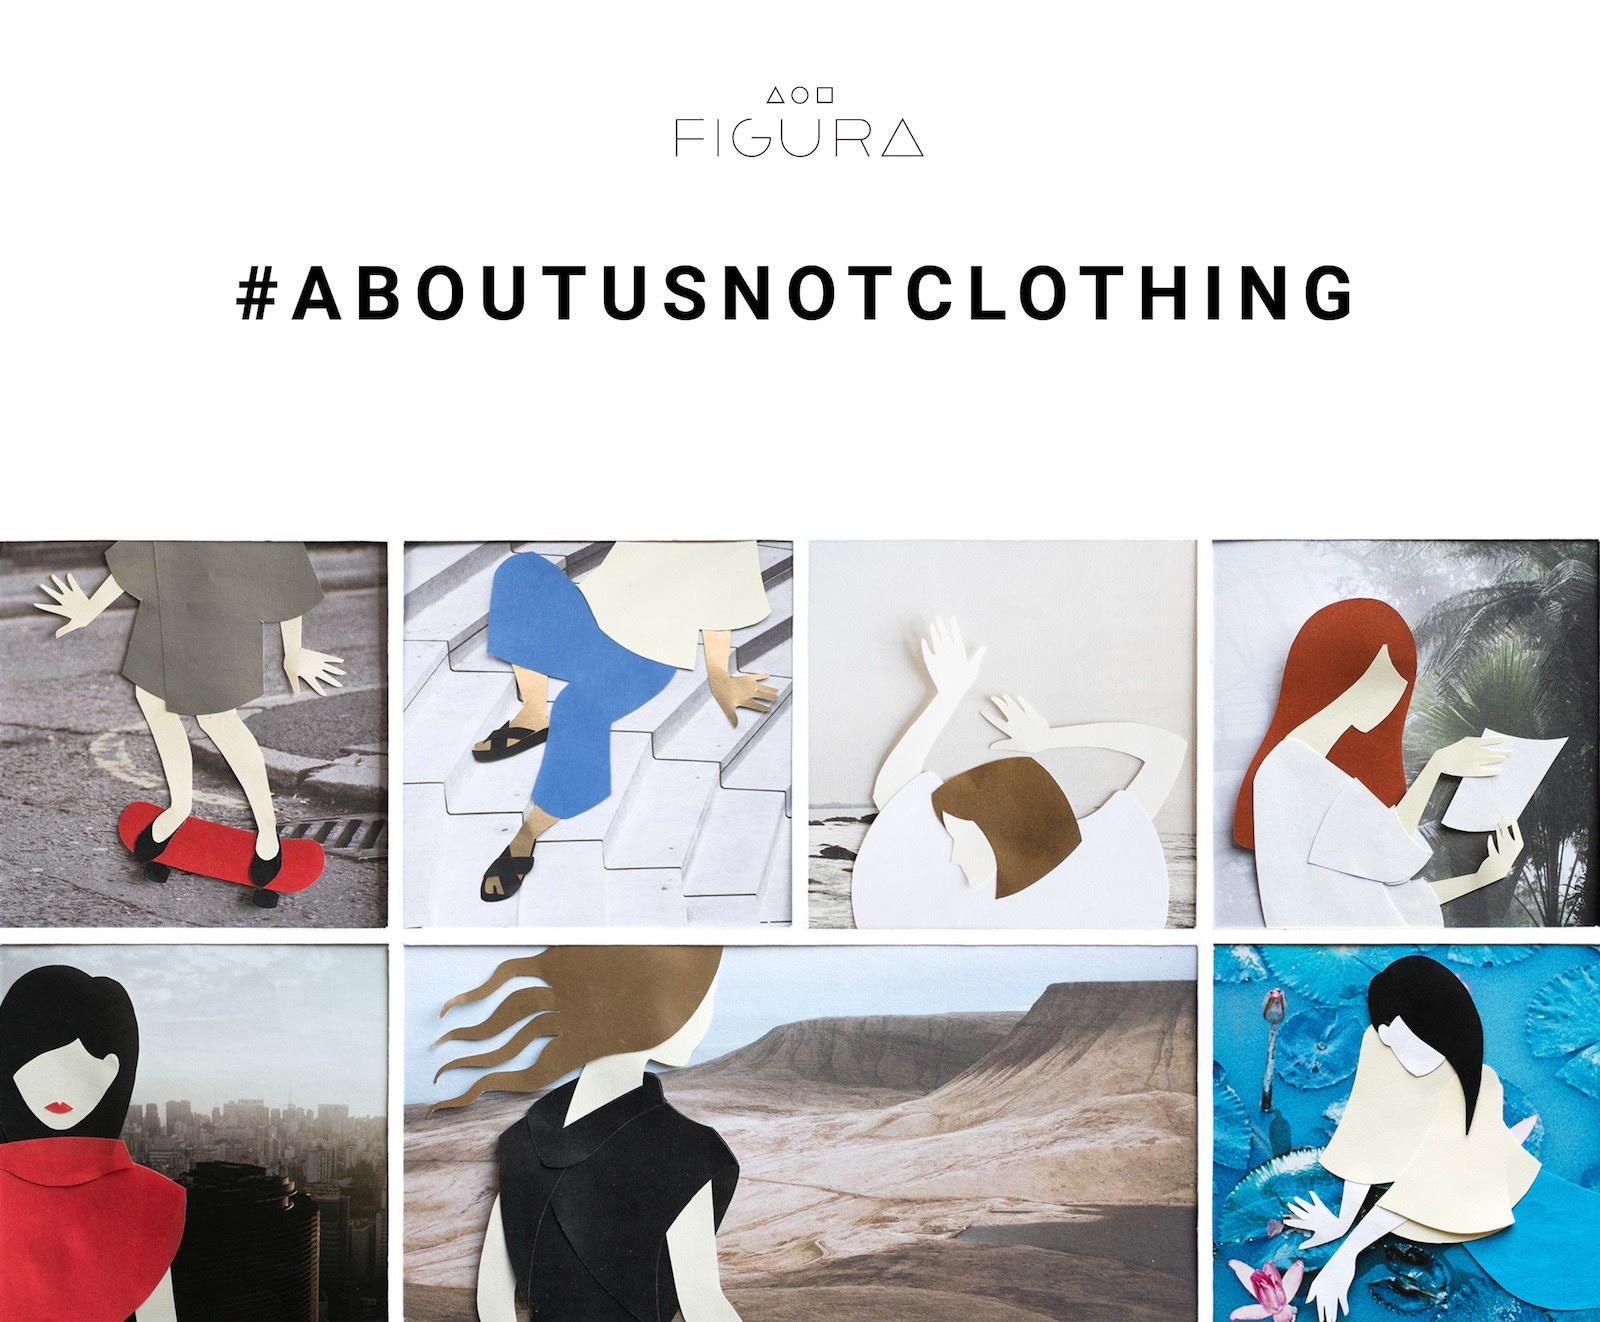 Figura #aboutusnotclothing title and paper collage illustration